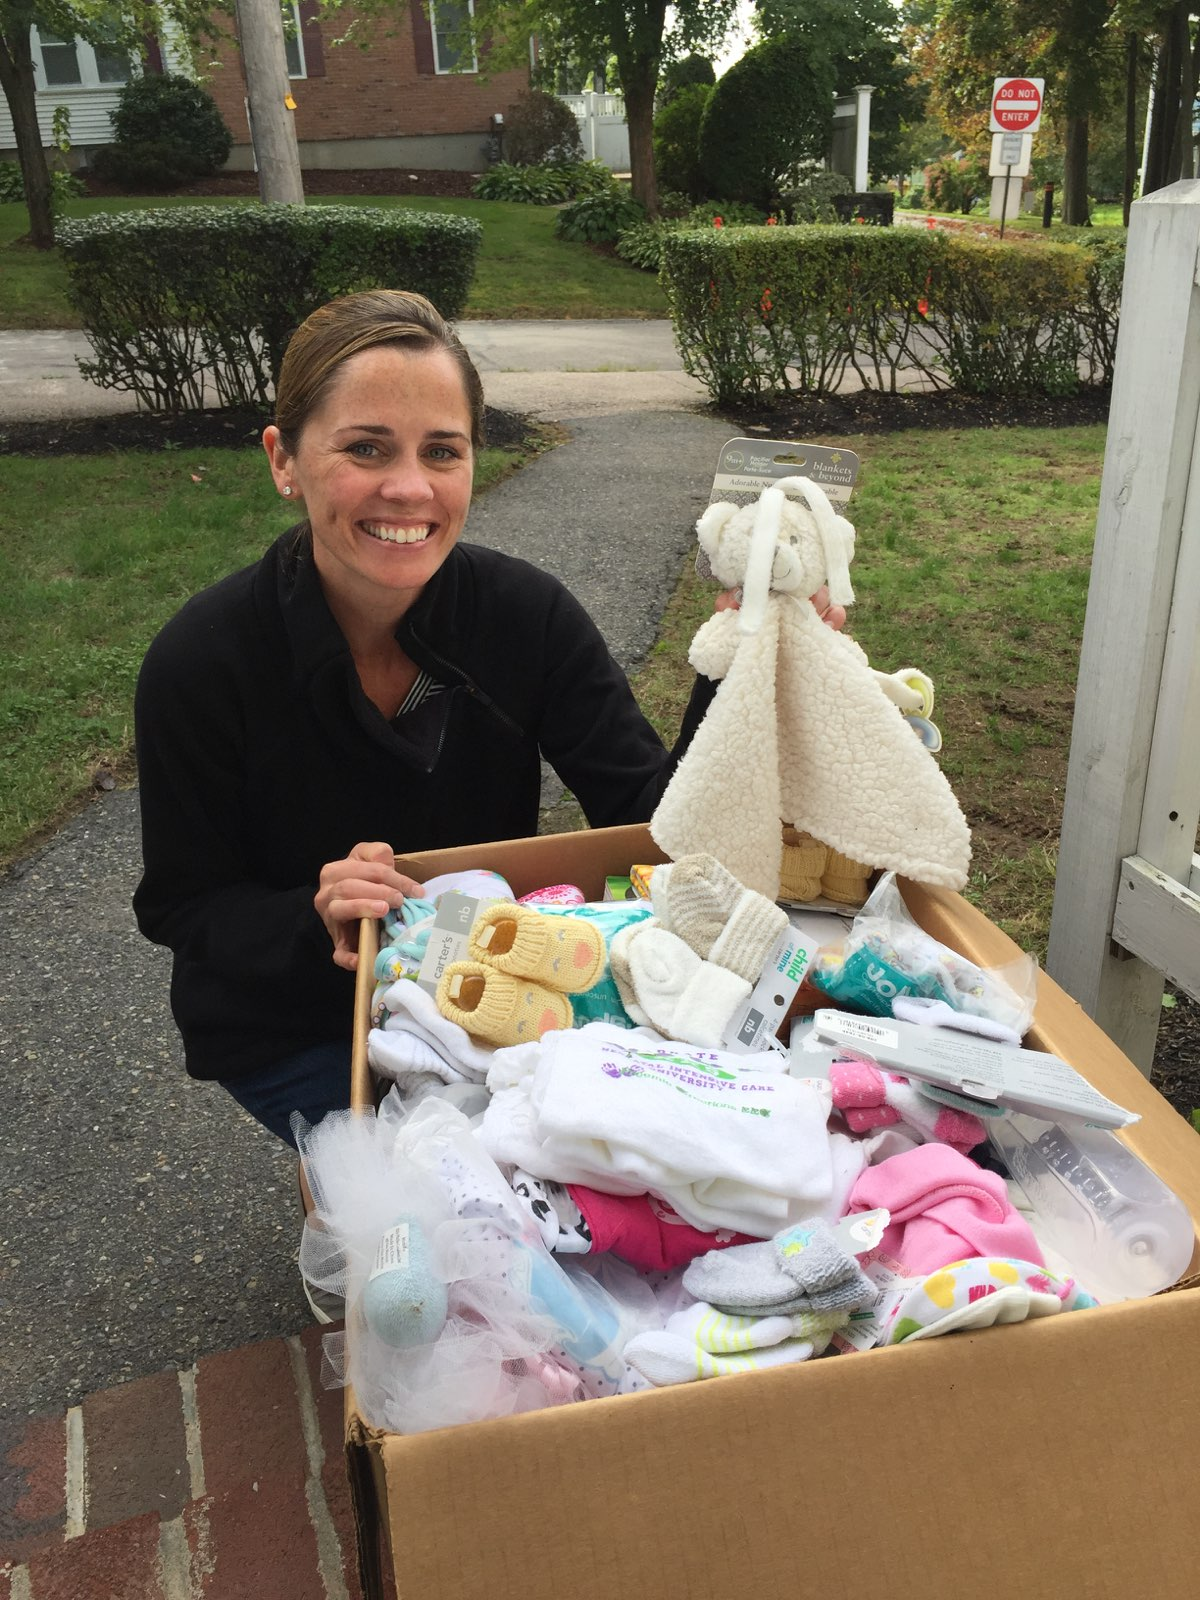 A woman donating new baby items to Circle of Hope